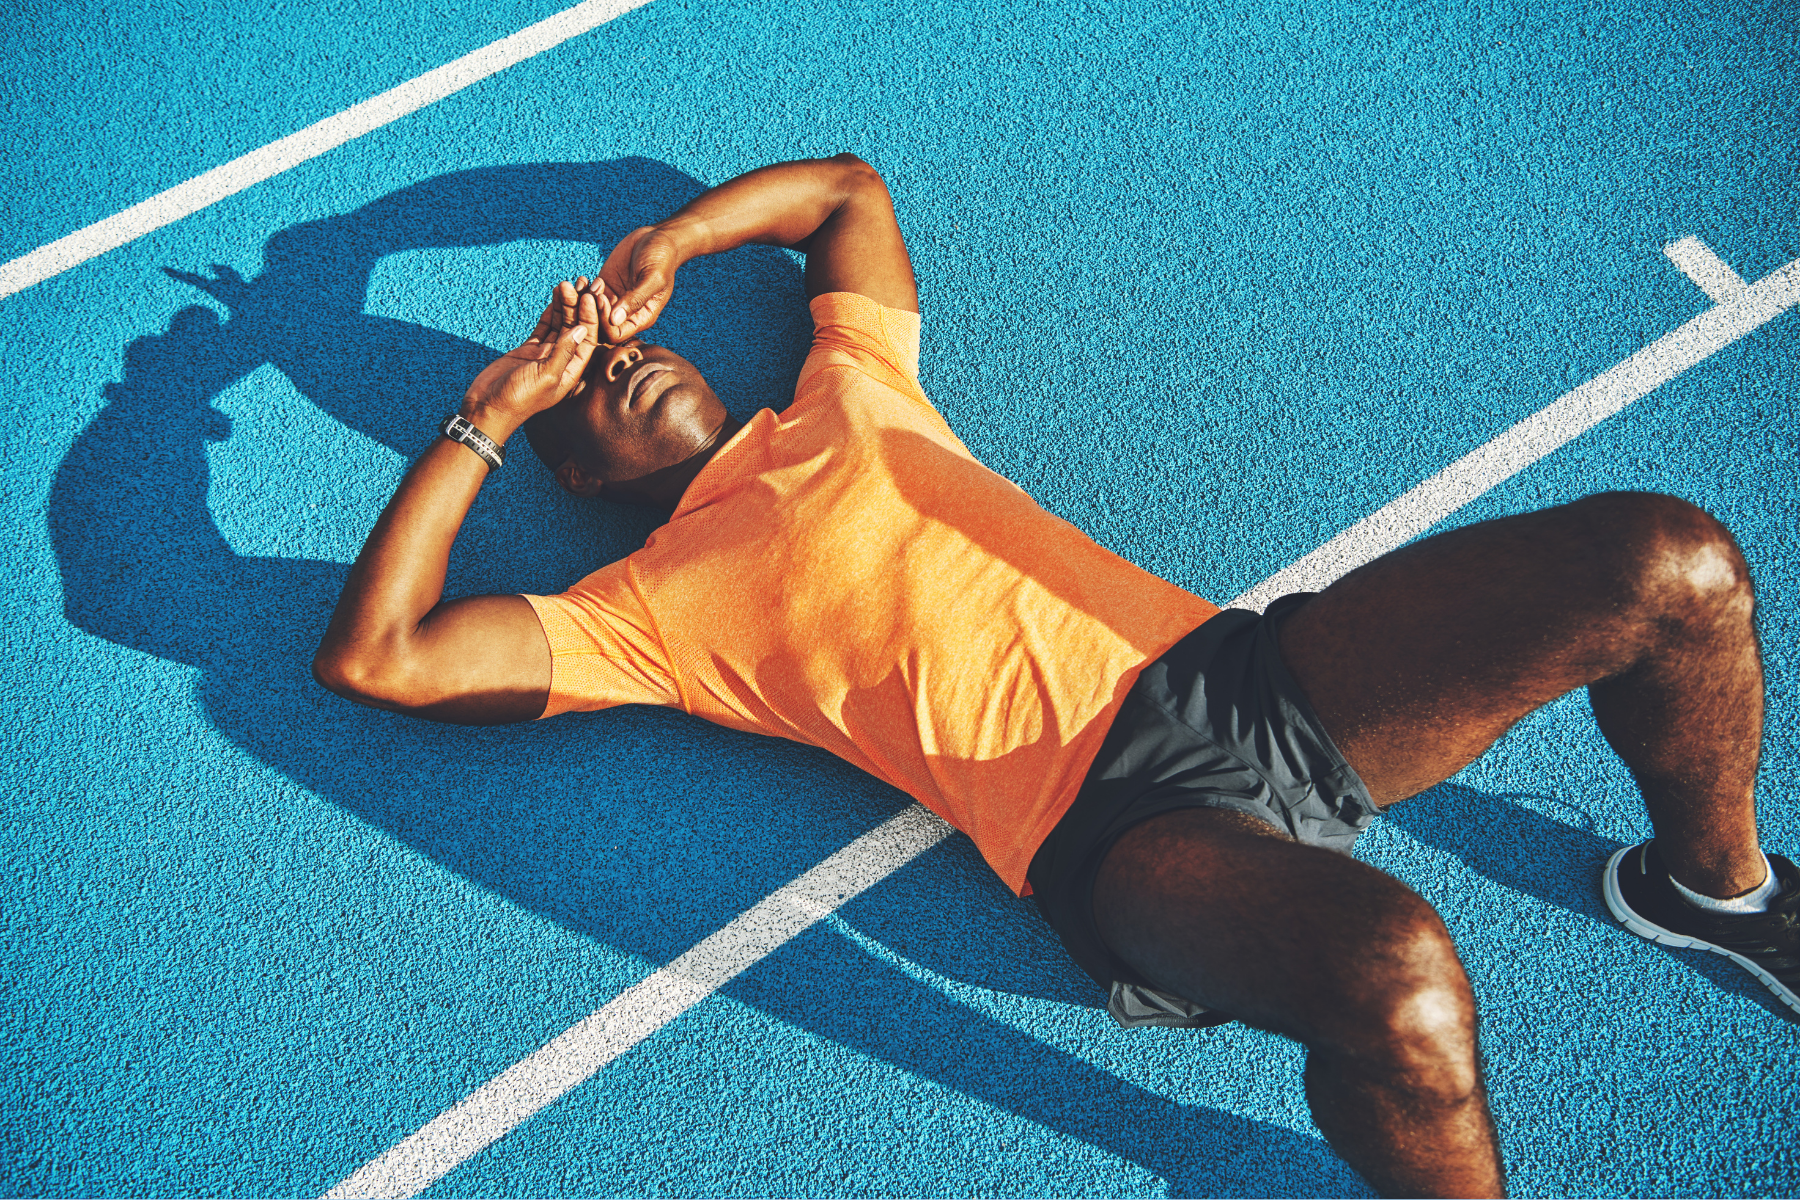 Runner tired and laying down on the track